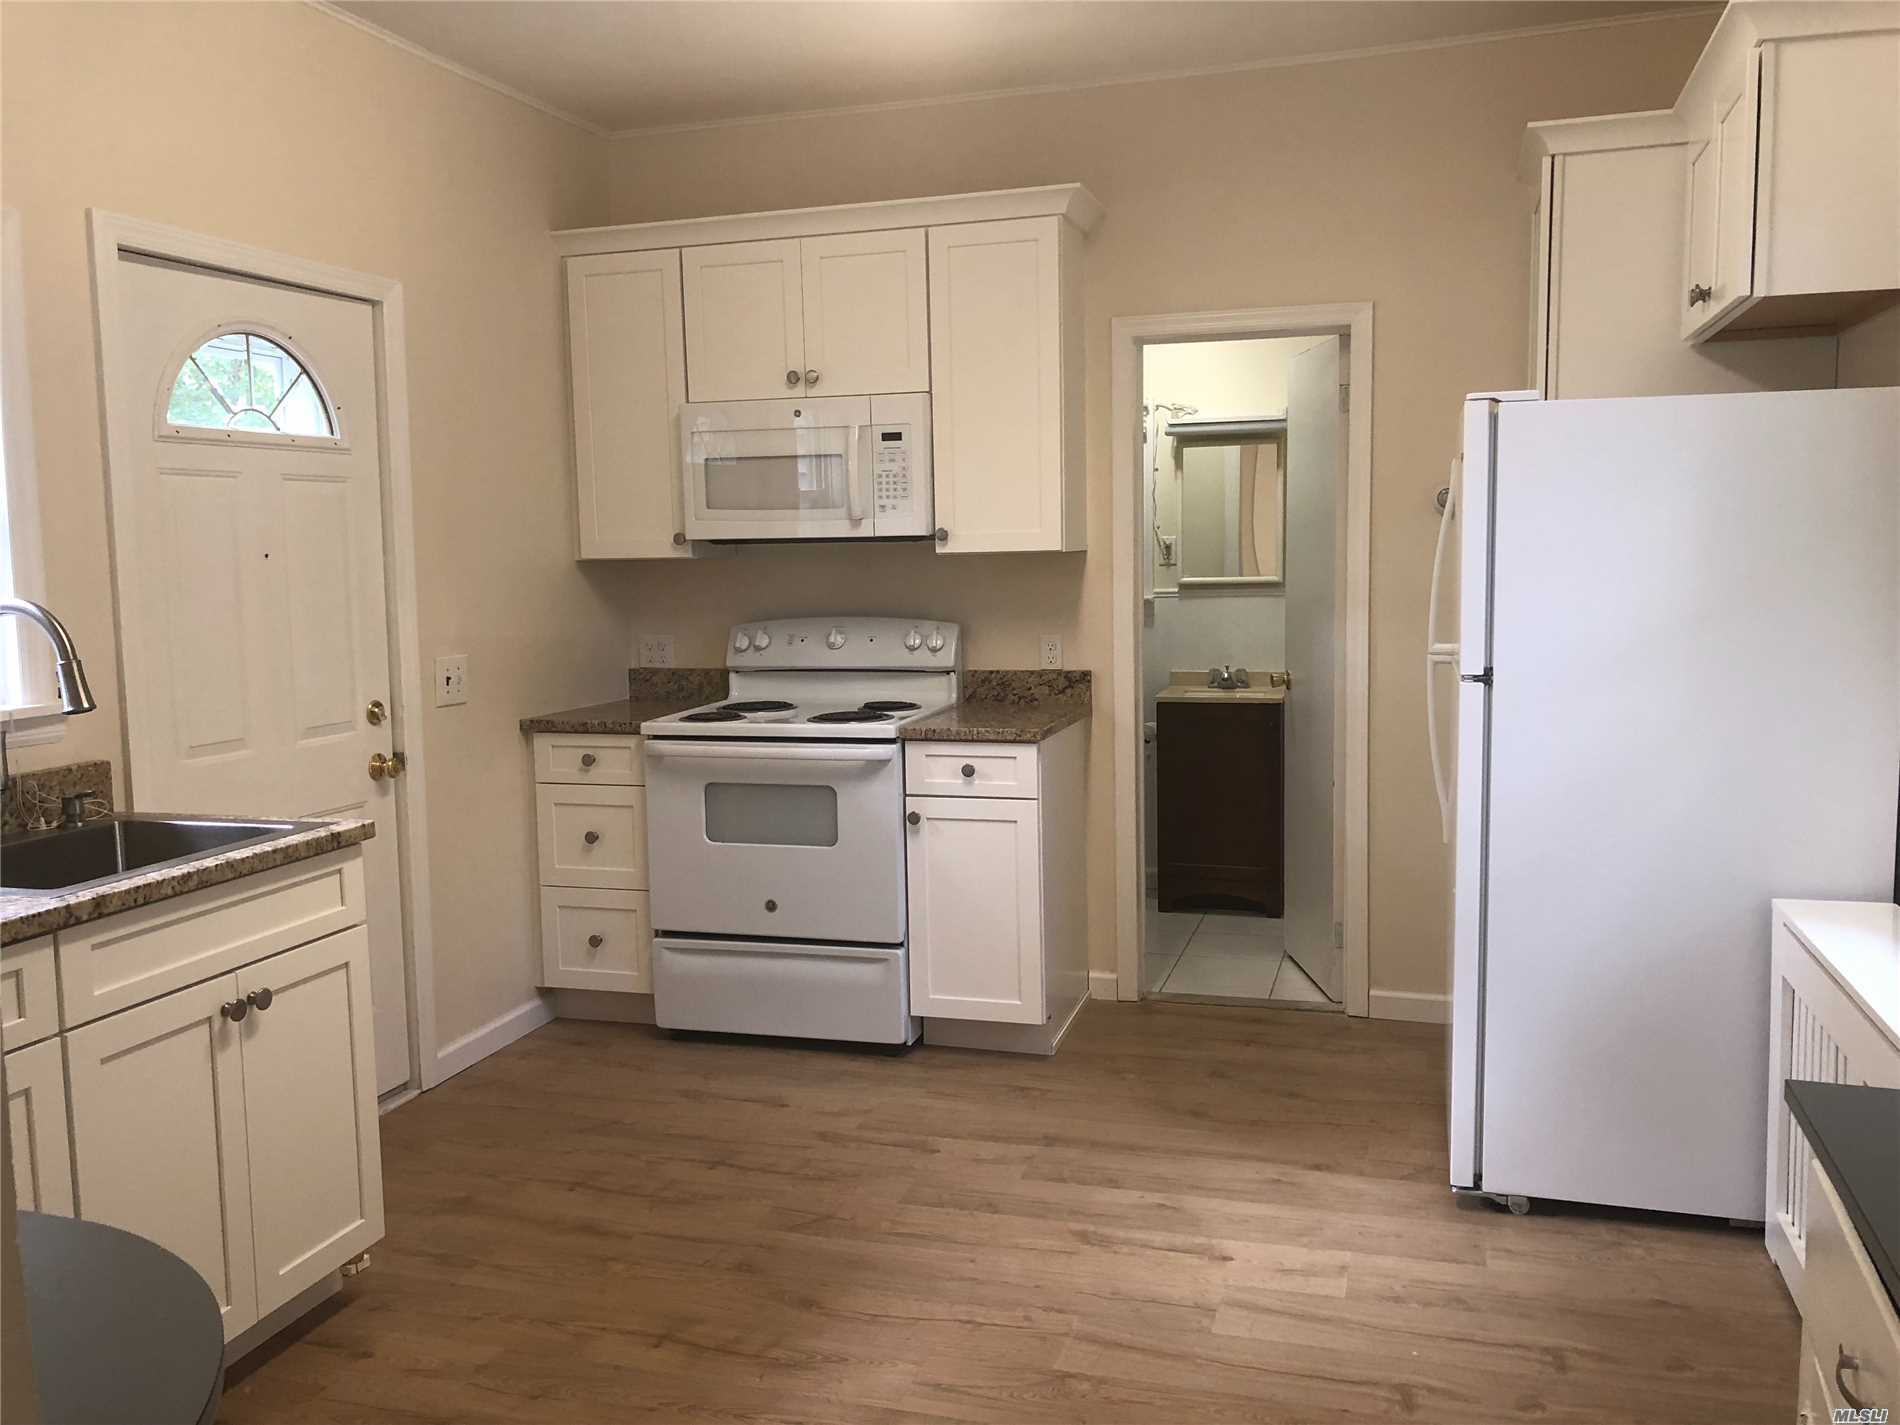 Very Spacious, Completely Renovated 2 Bedroom Apartment Offering A Brand New Kitchen W/ Granite Countertops, Brand New Gleaming Hardwood Floors, 2 Full Bathrooms, Mudroom With Washer And Dryer. Lots Of Closet Space, Ample Parking. Close To The Heart Of Beautiful E. Northport. Non-Refundable Ntn Credit Check Required For All Over 18 Yrs Old